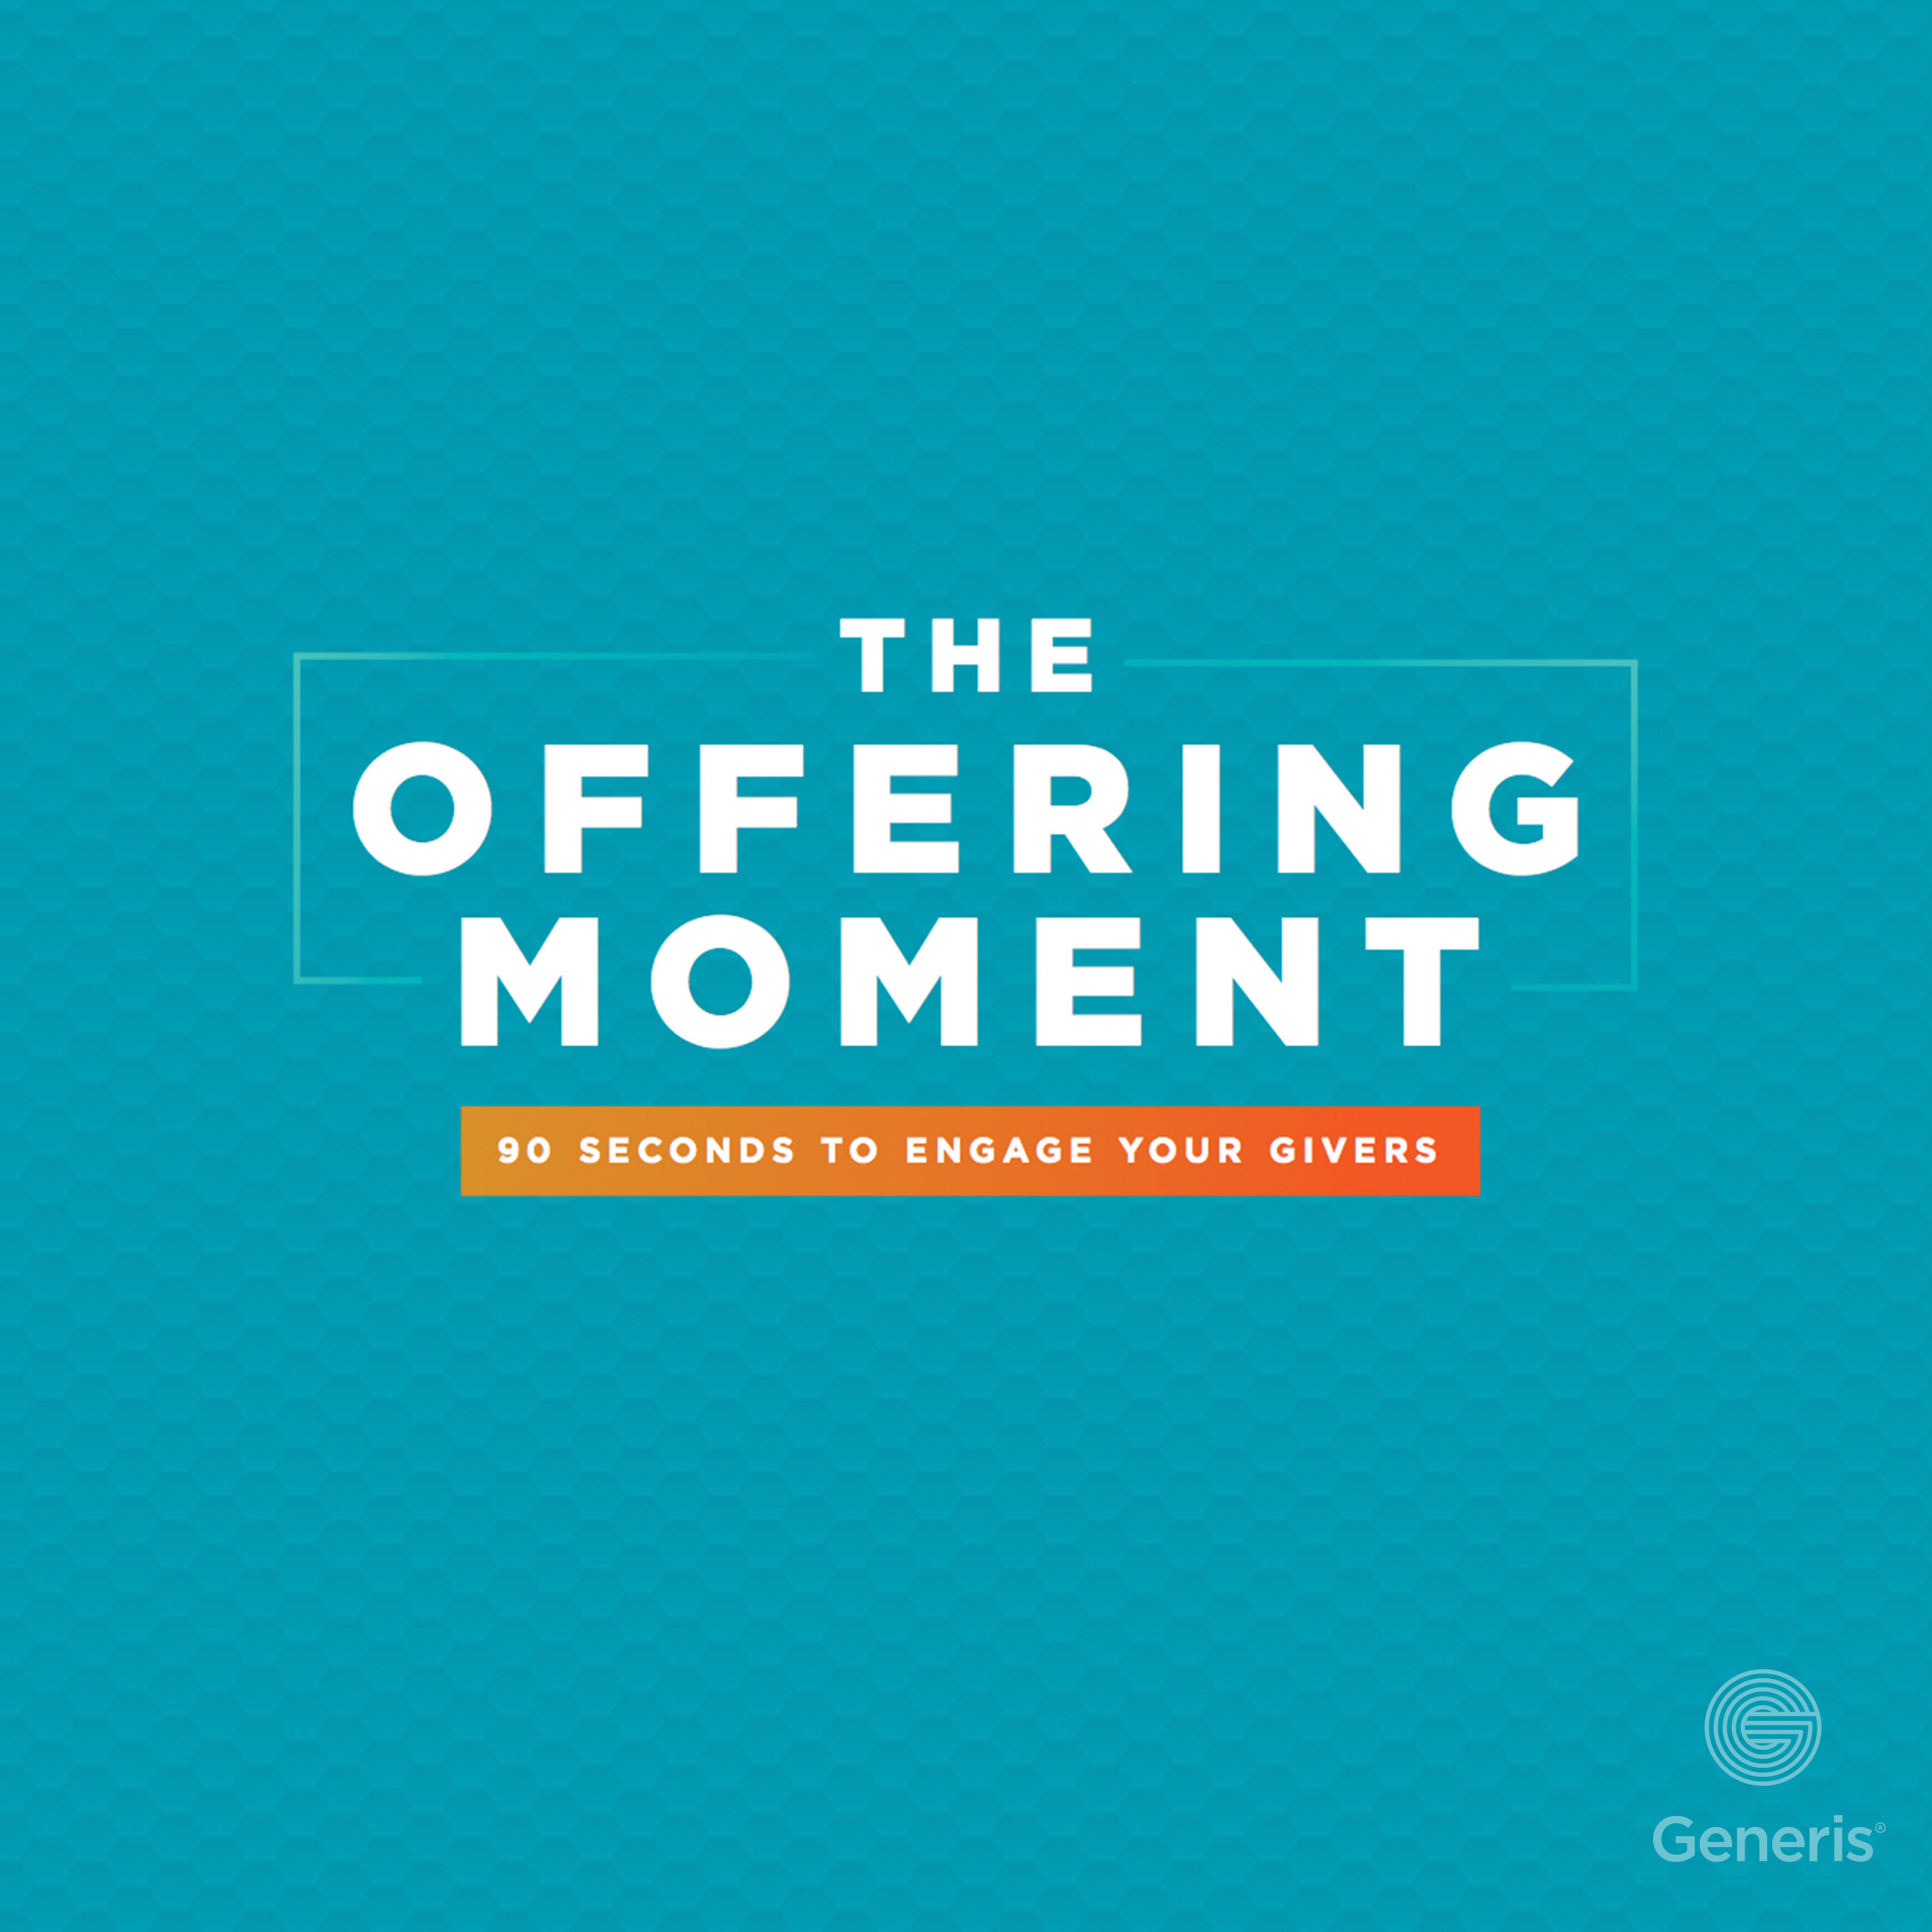 GN_The_Offering_Moment_eBook